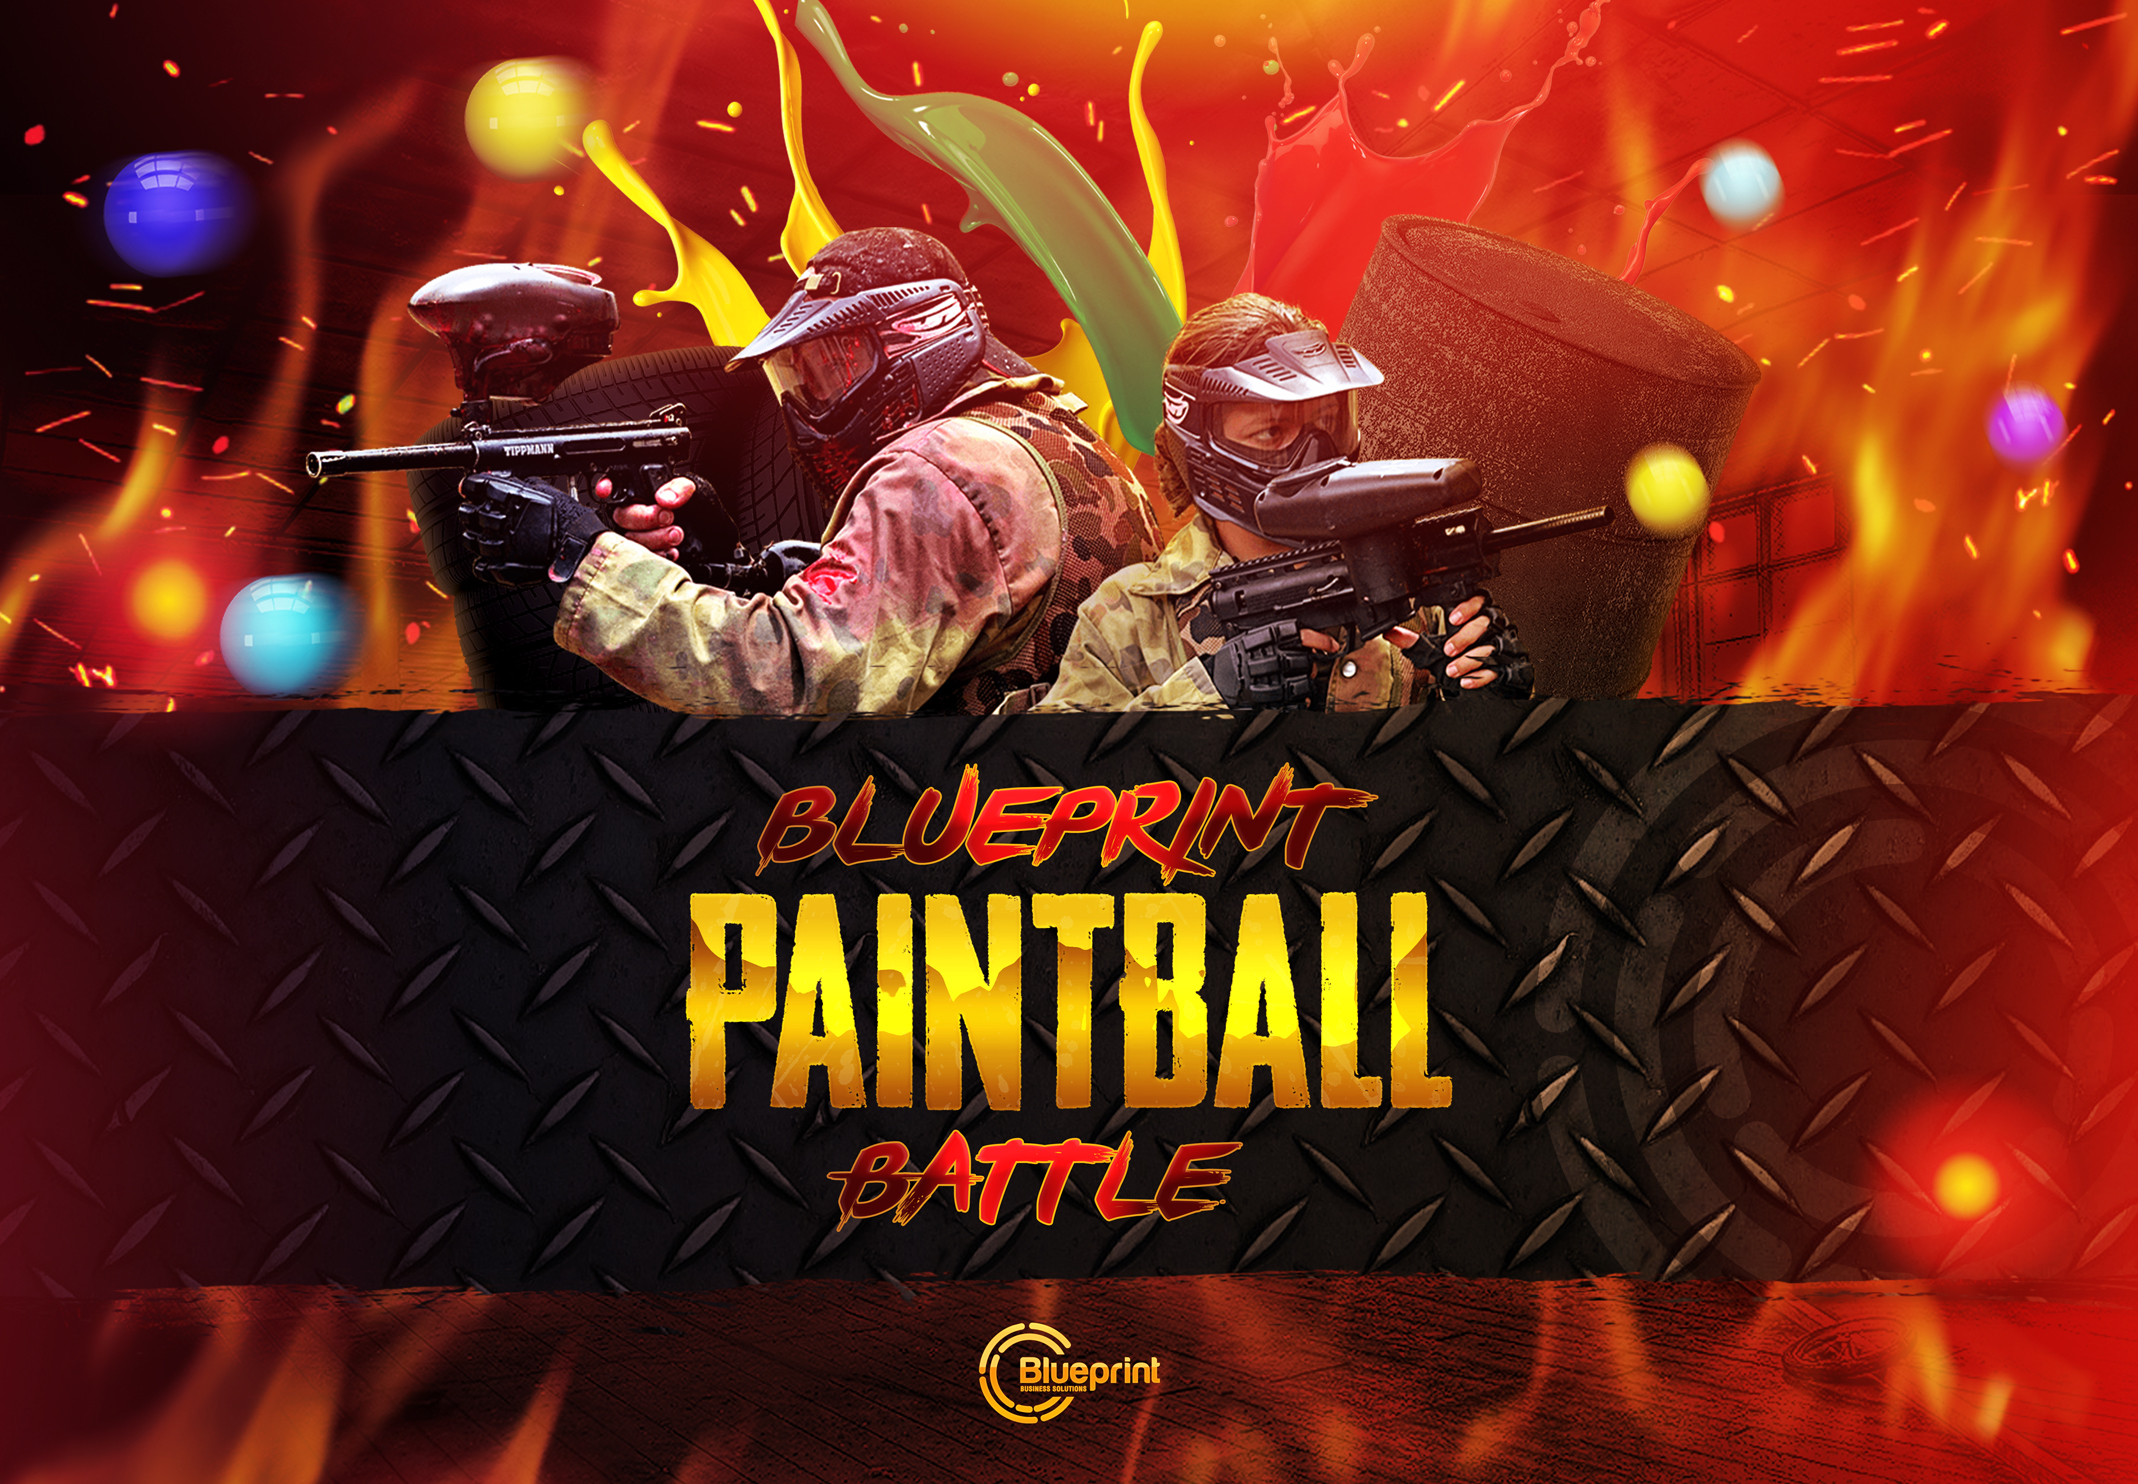 Blueprint paintball battle blueprint business solutions corp blueprint paintball battle malvernweather Choice Image